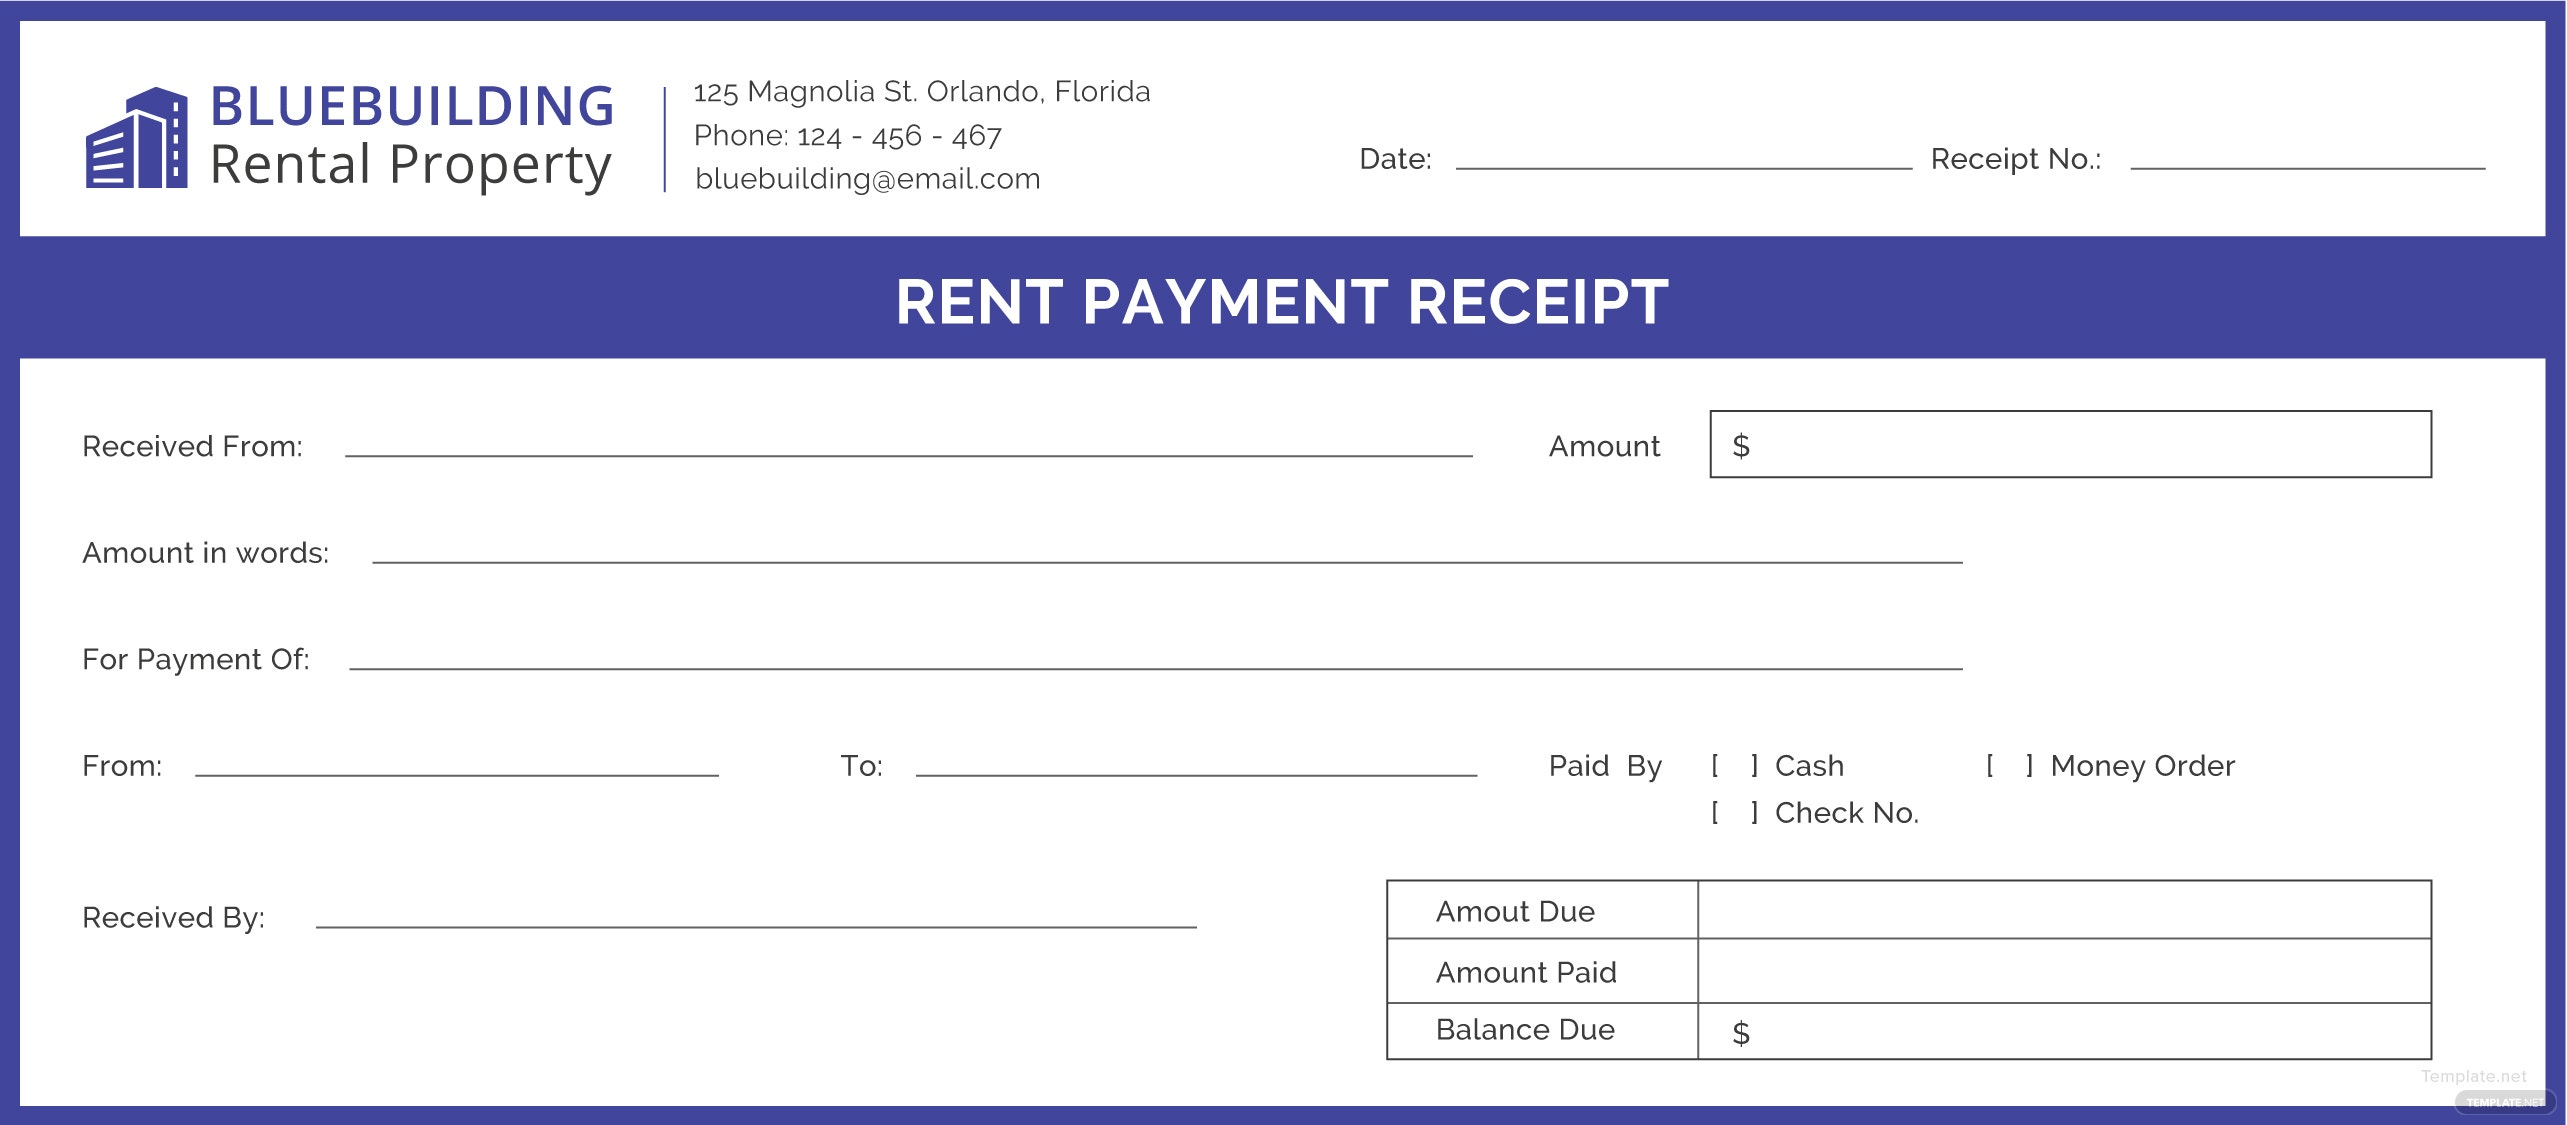 rent payment template - Yelom.myphonecompany.co